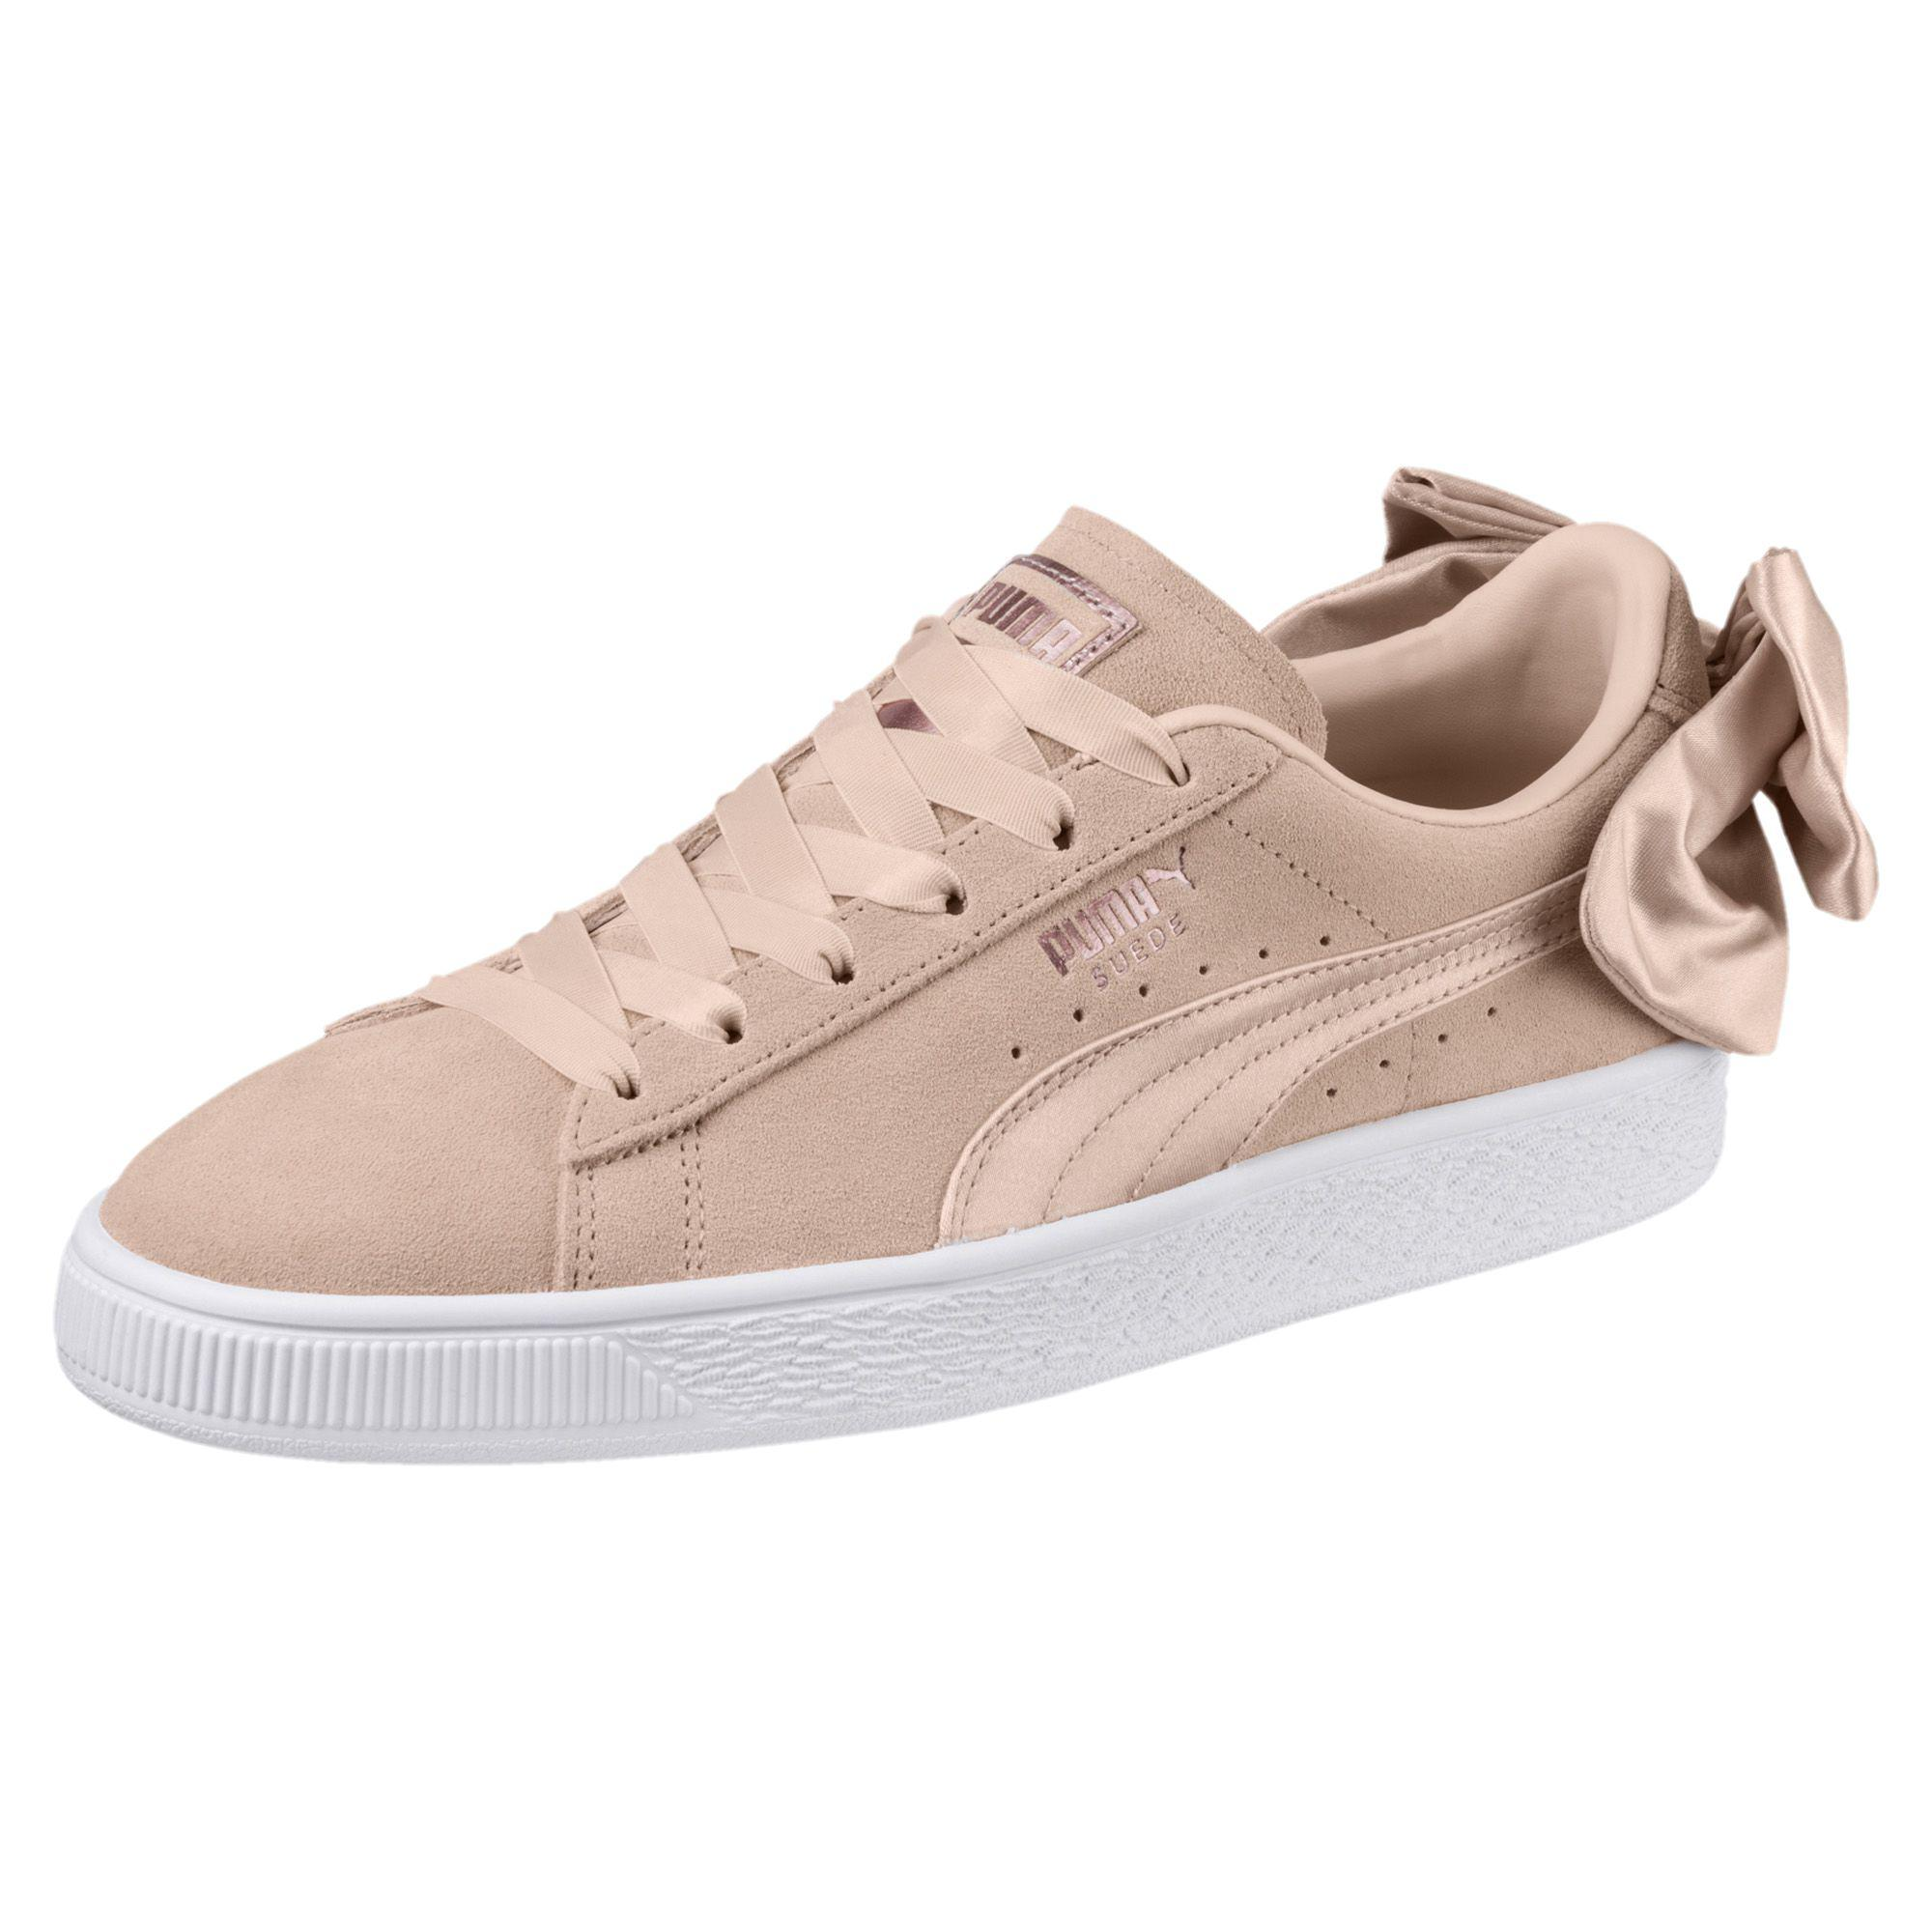 239041cd4e8 PUMA Suede Bow Valentine Women's Sneakers - Lyst